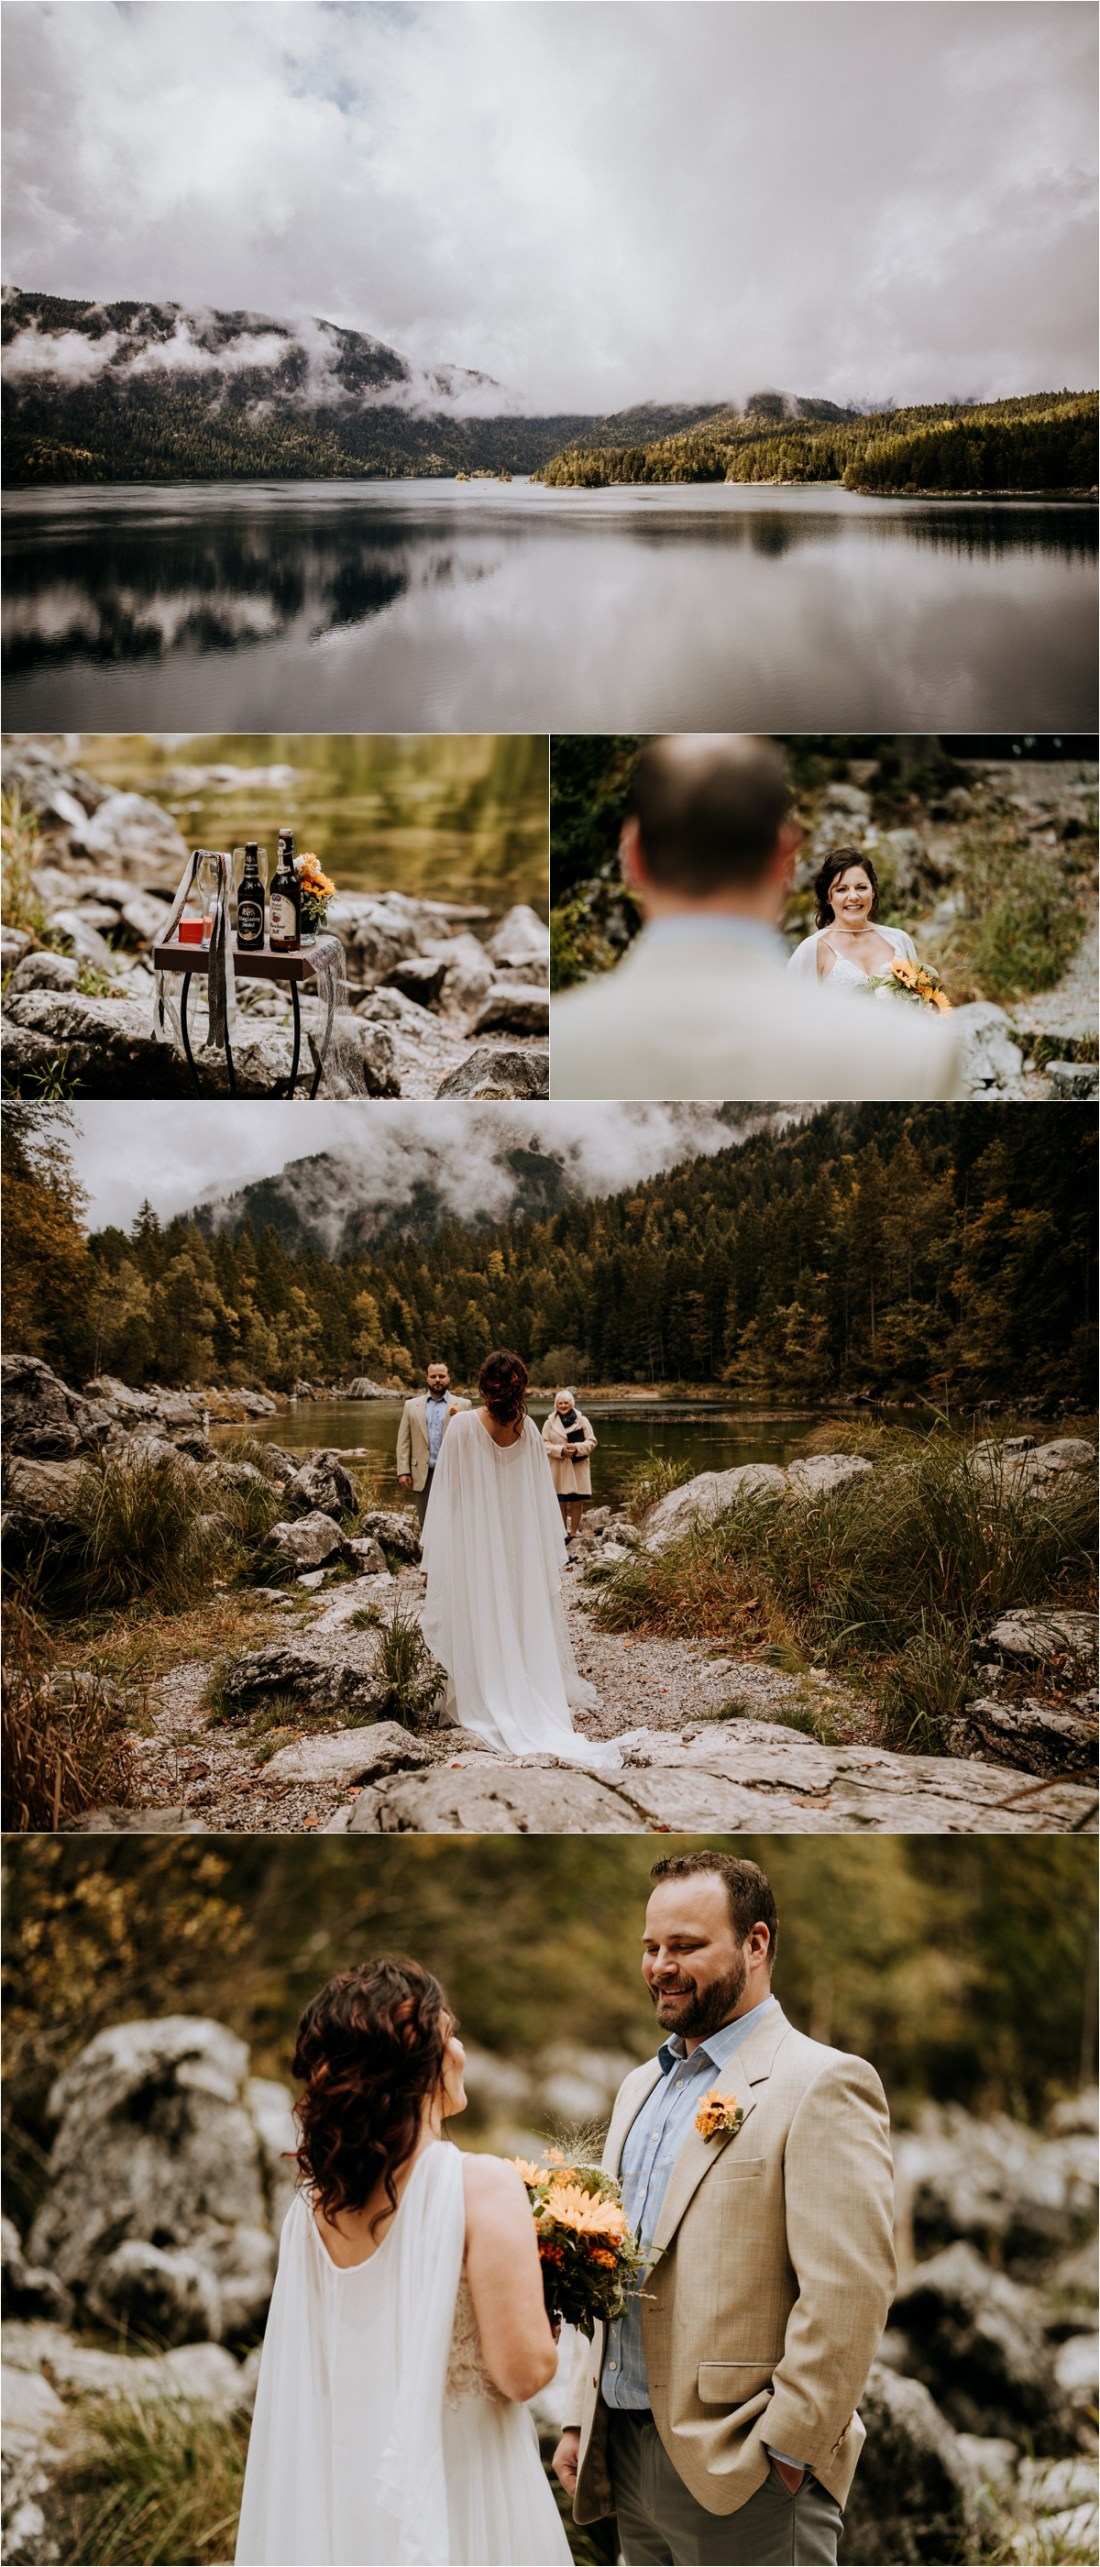 A Lakeside Elopement in the Bavarian Alps by In Love With A Wolf